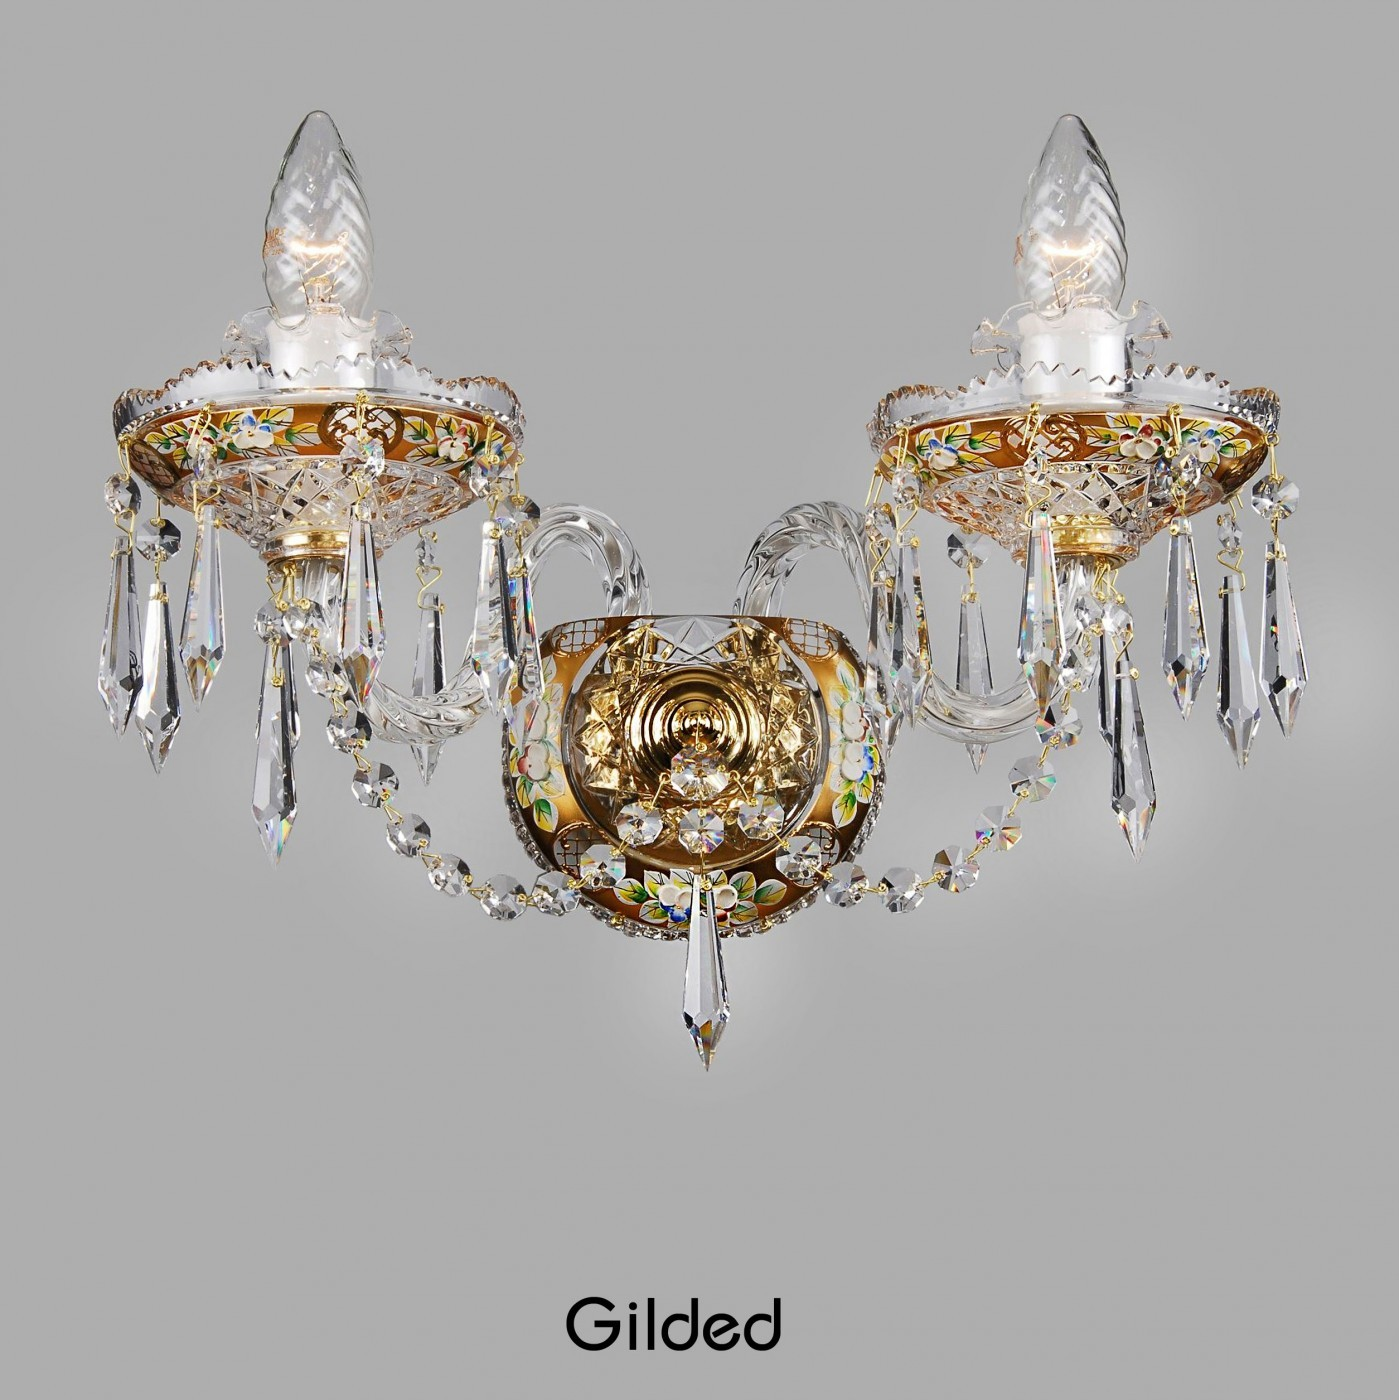 Crystal chandeliers merry crystal crystal chandelier gilded aloadofball Choice Image